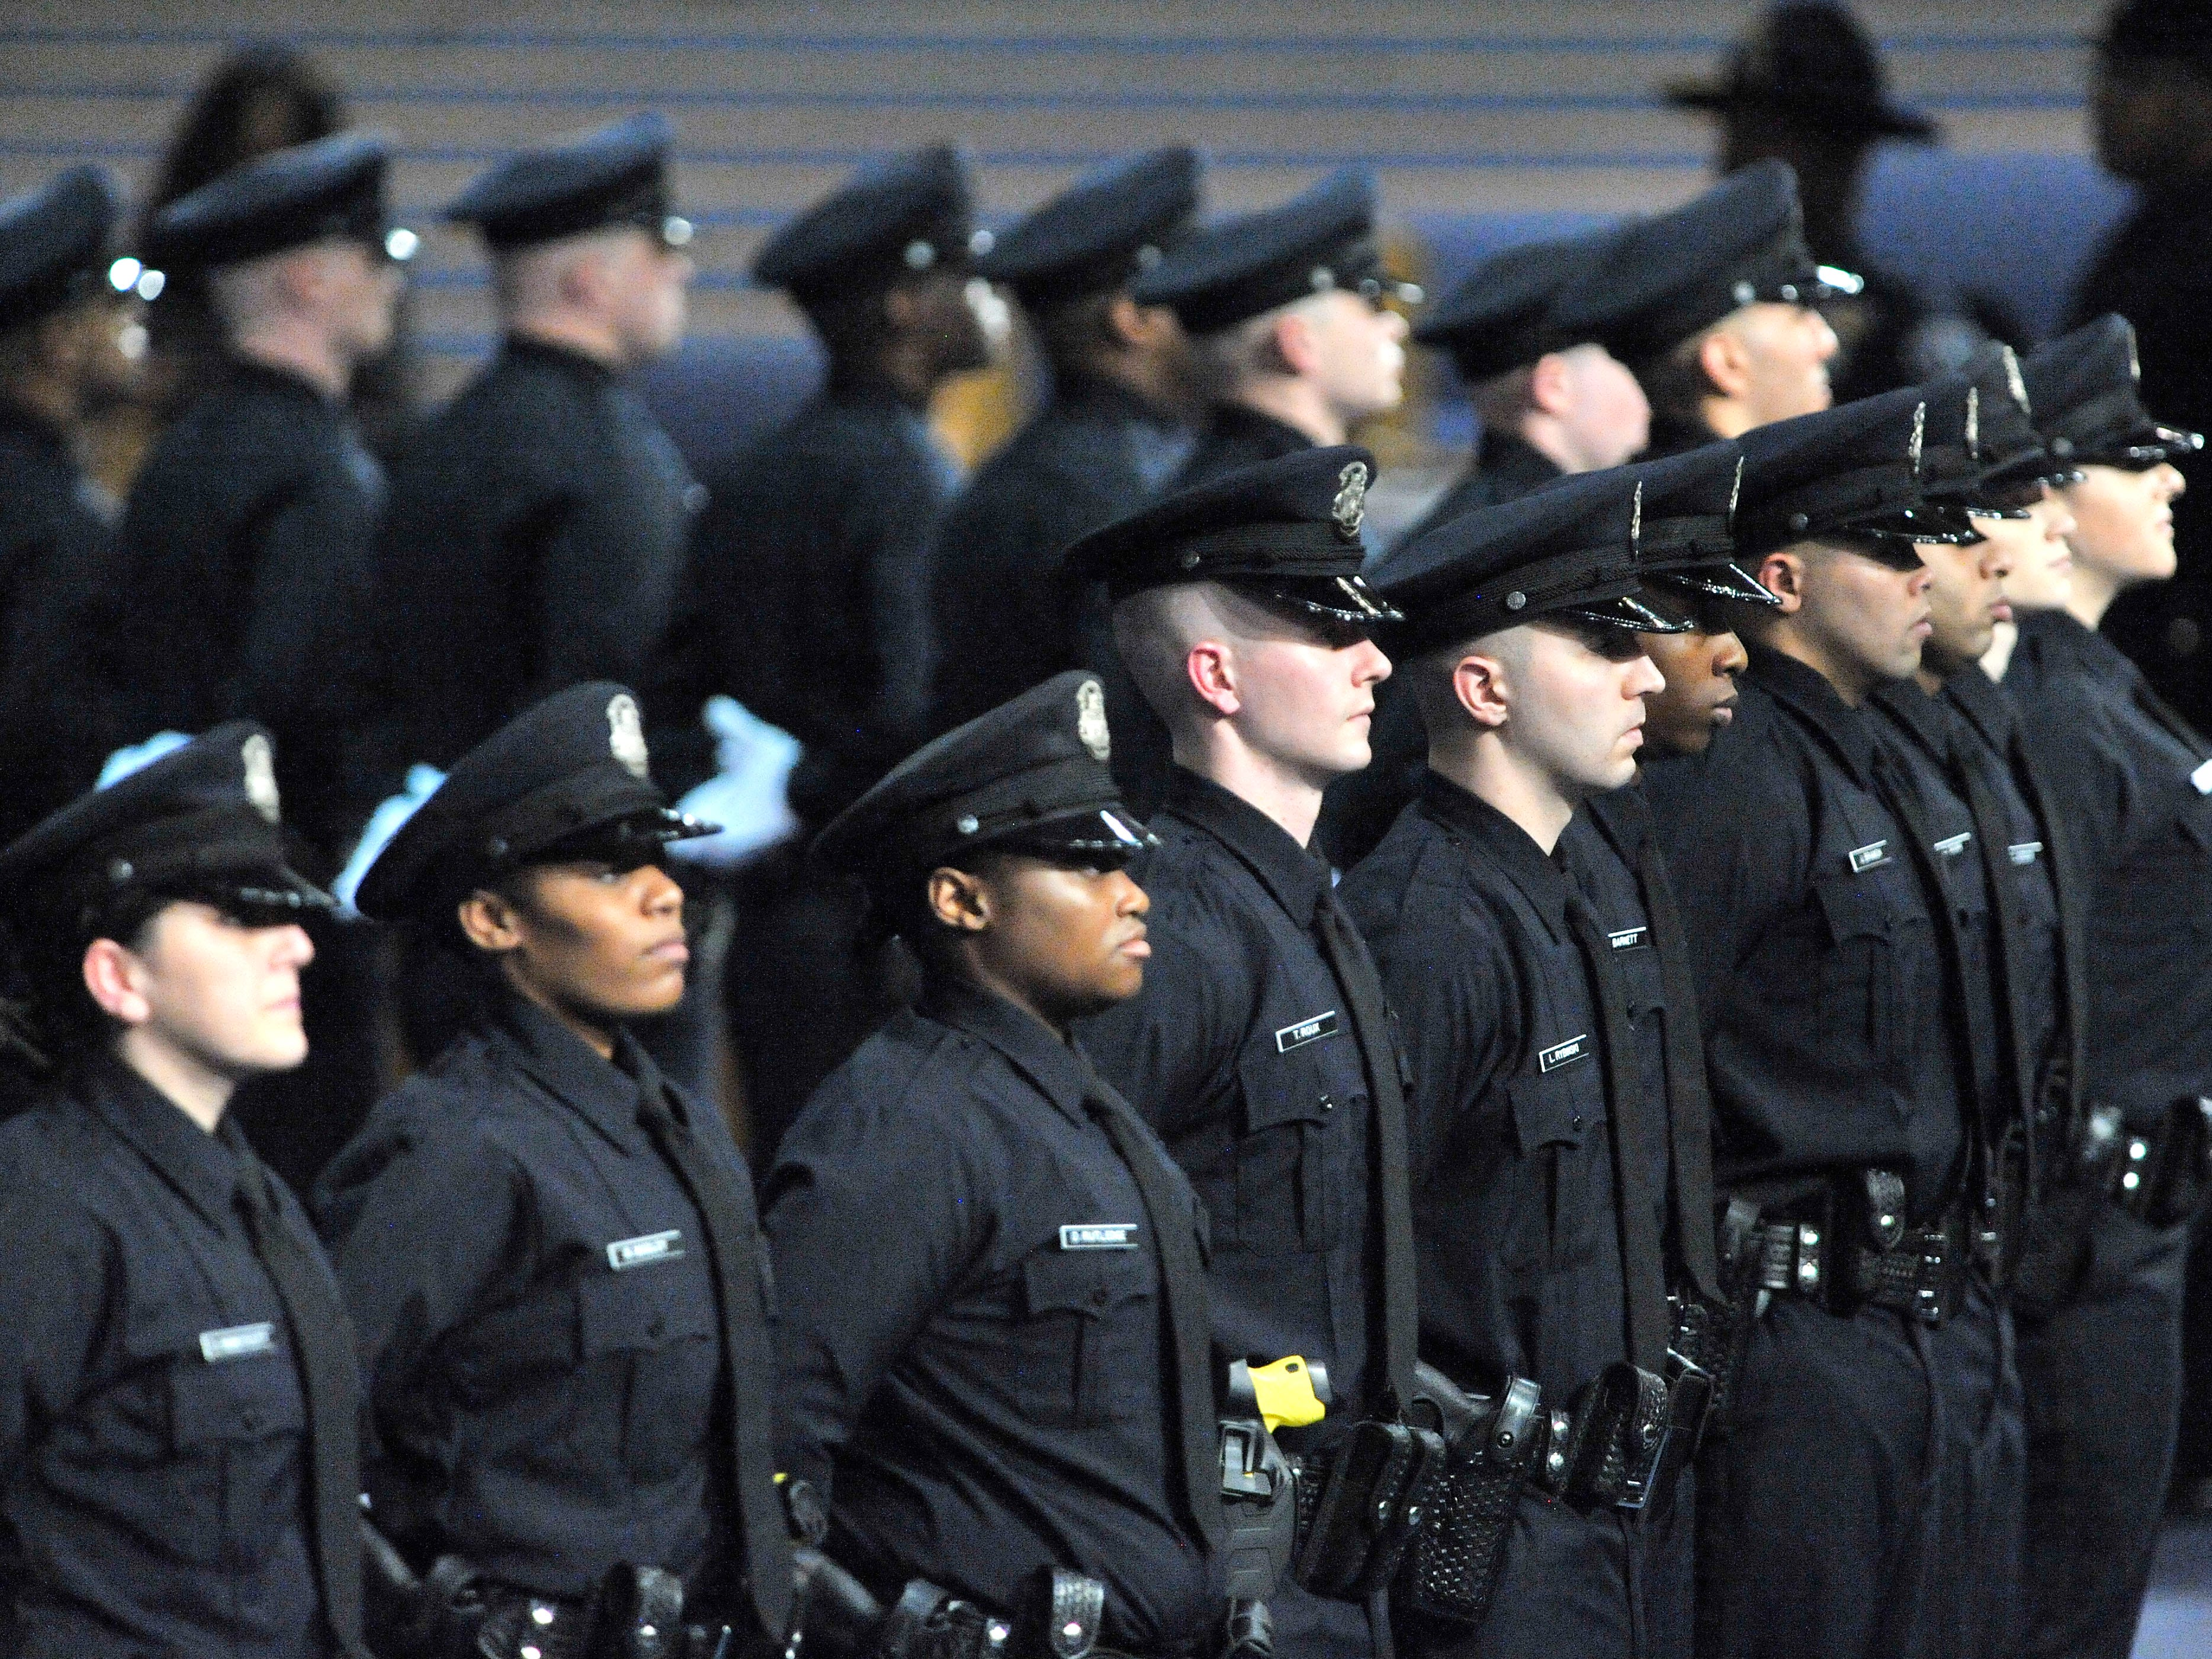 Newly sworn Detroit police officers stand at ease as they await loved ones to approach and pin police badges on their uniforms.